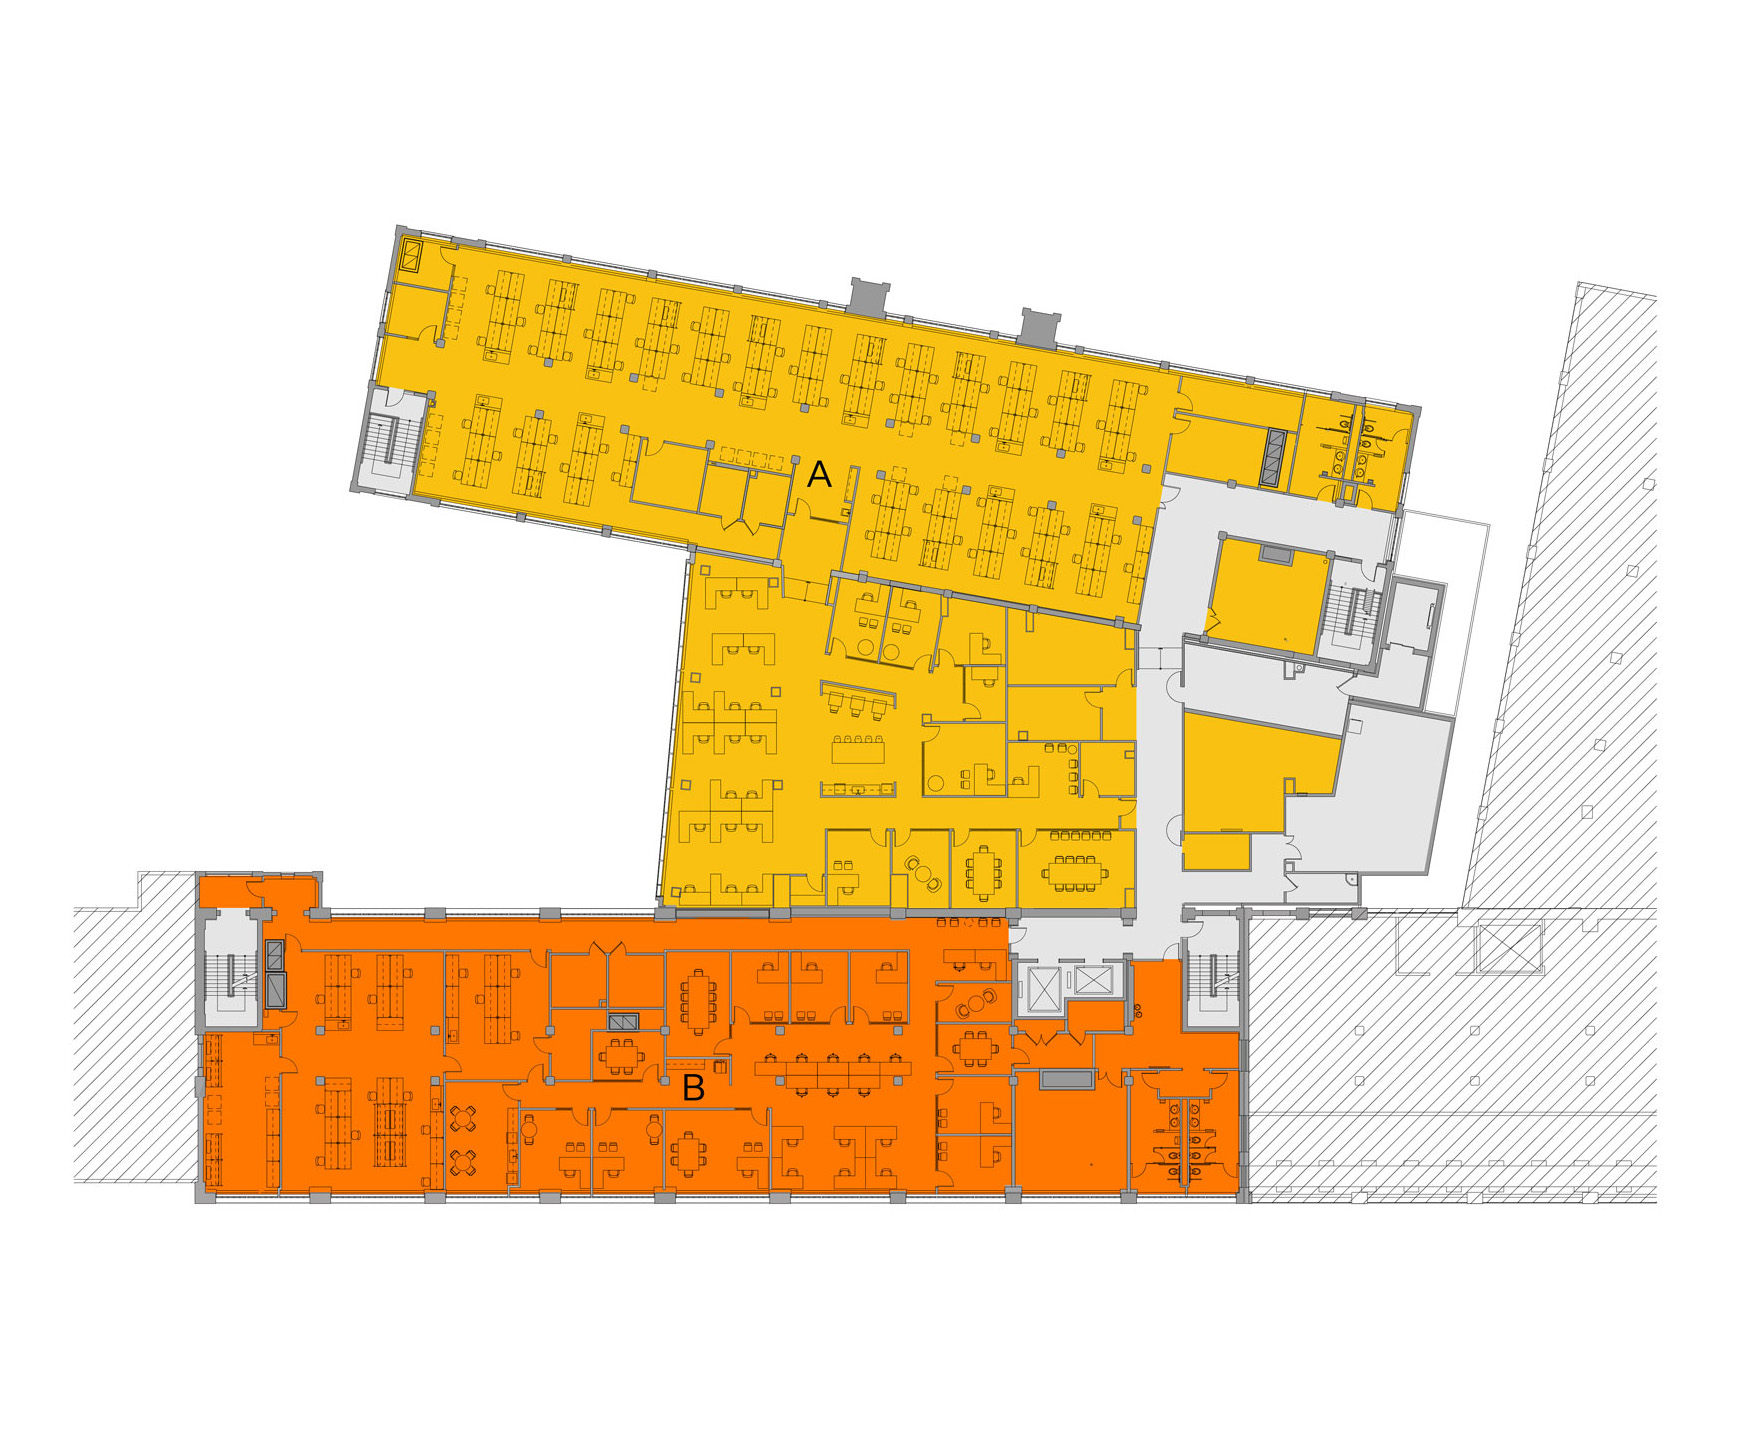 Blueprint layout of Winchester campus level 4